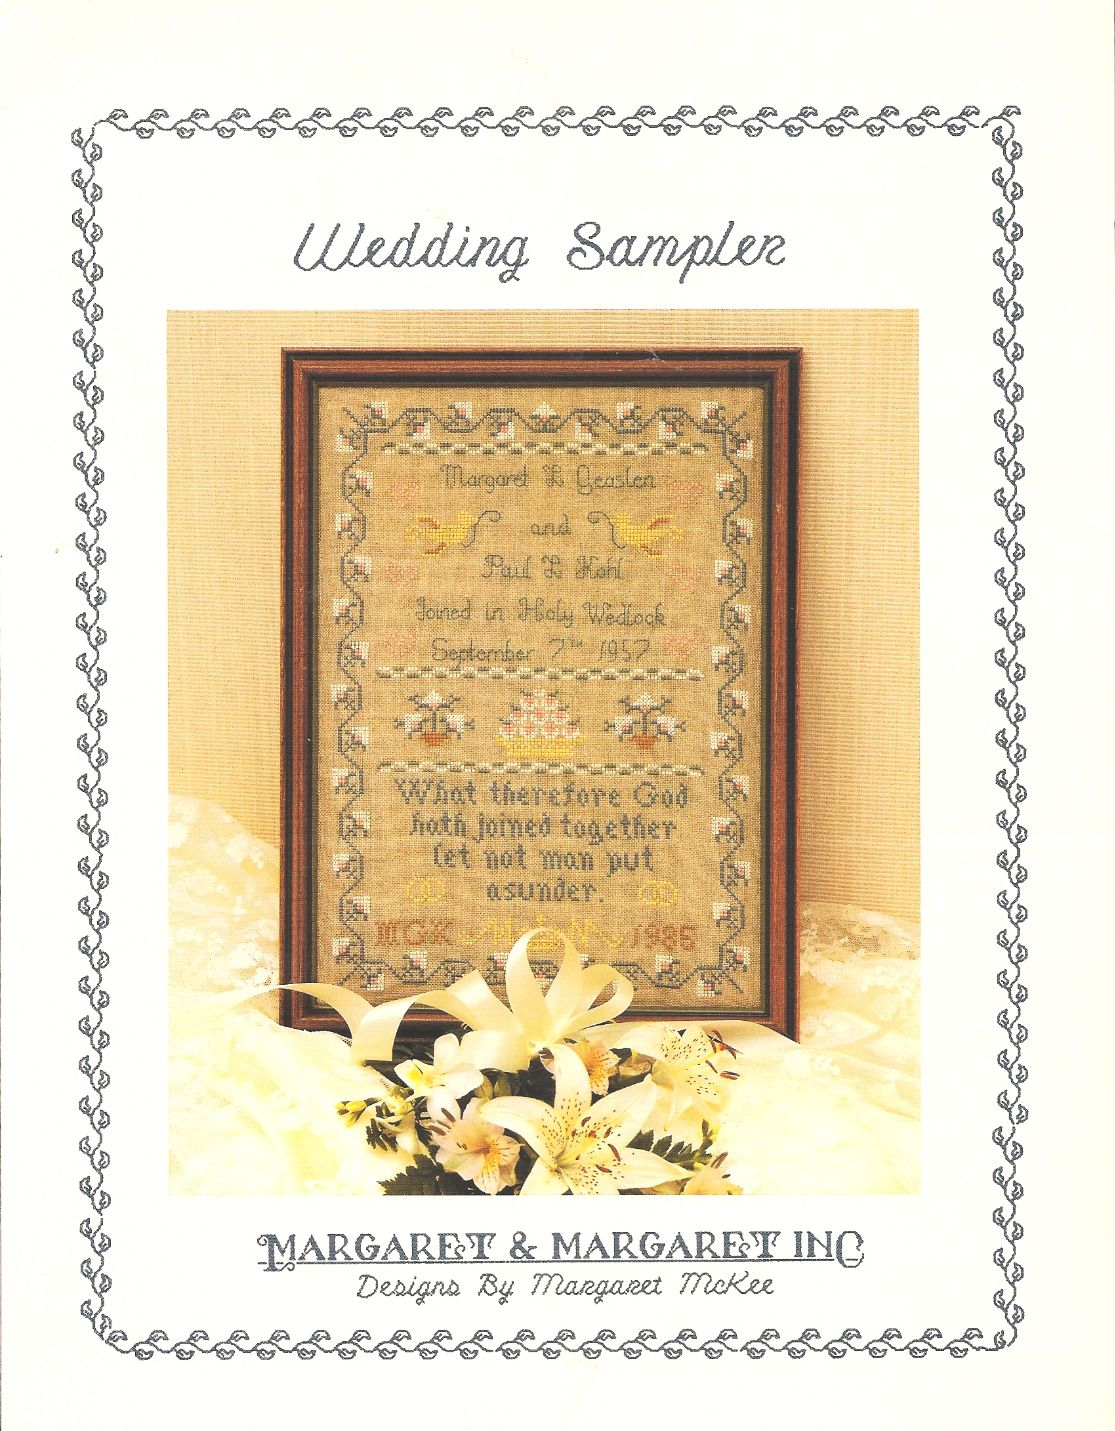 wedding sampler cross stitch